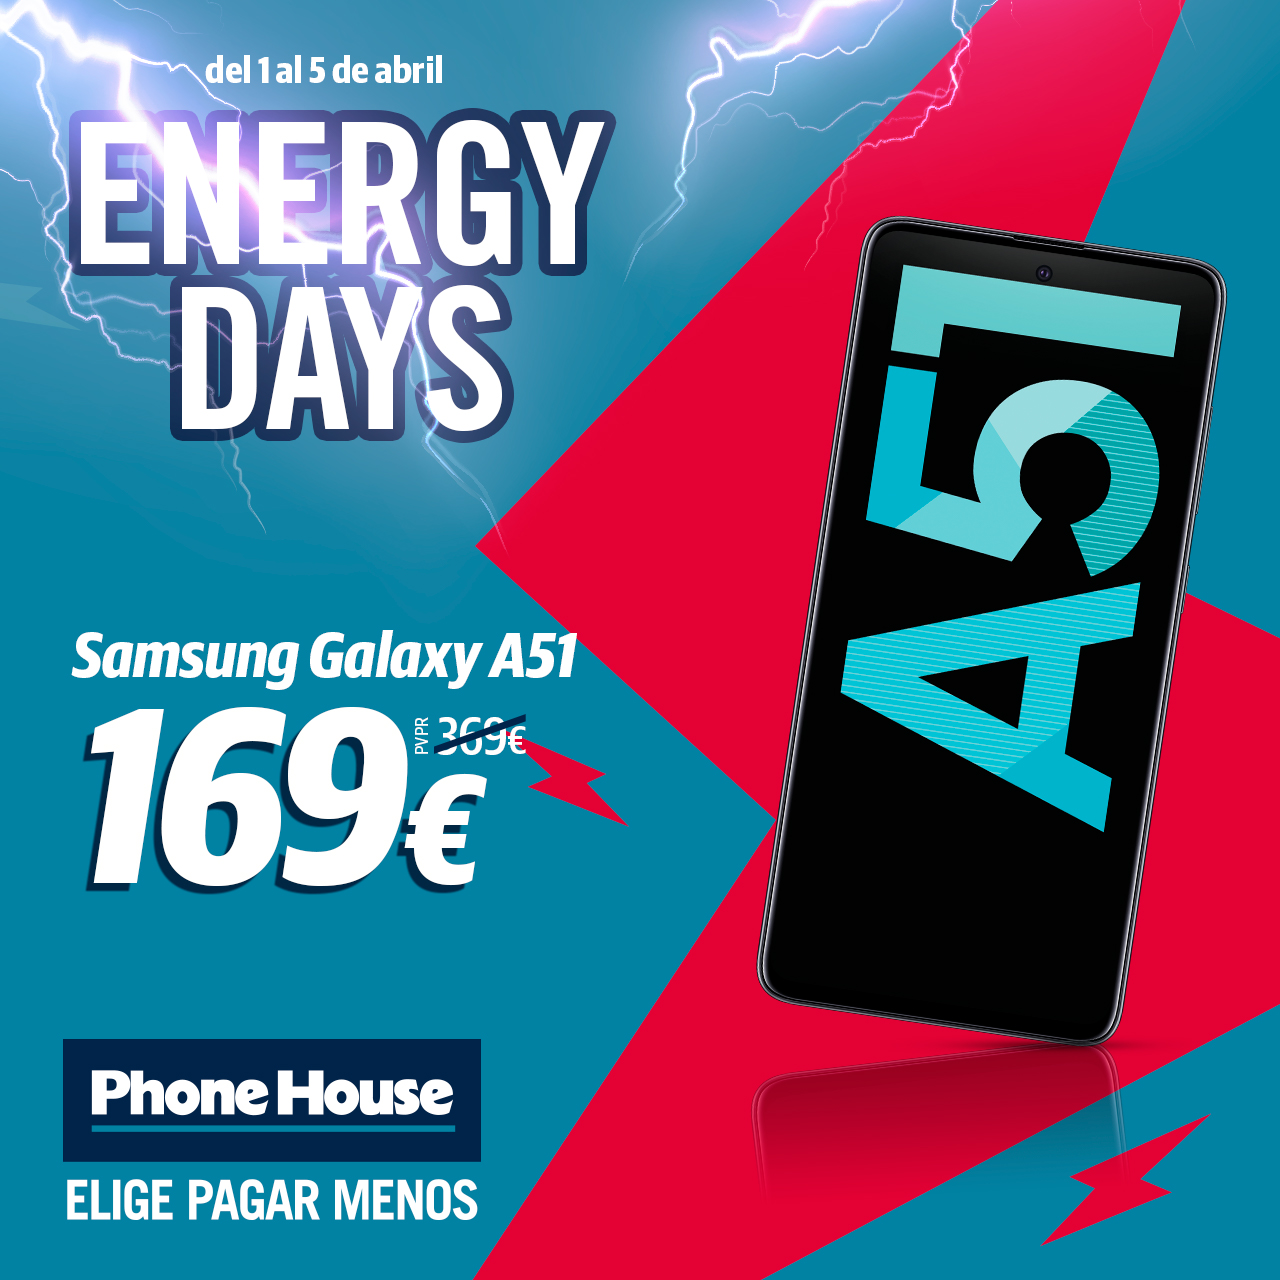 1000x1000 Rrss Energy Days 01a05 04 Prioridad1